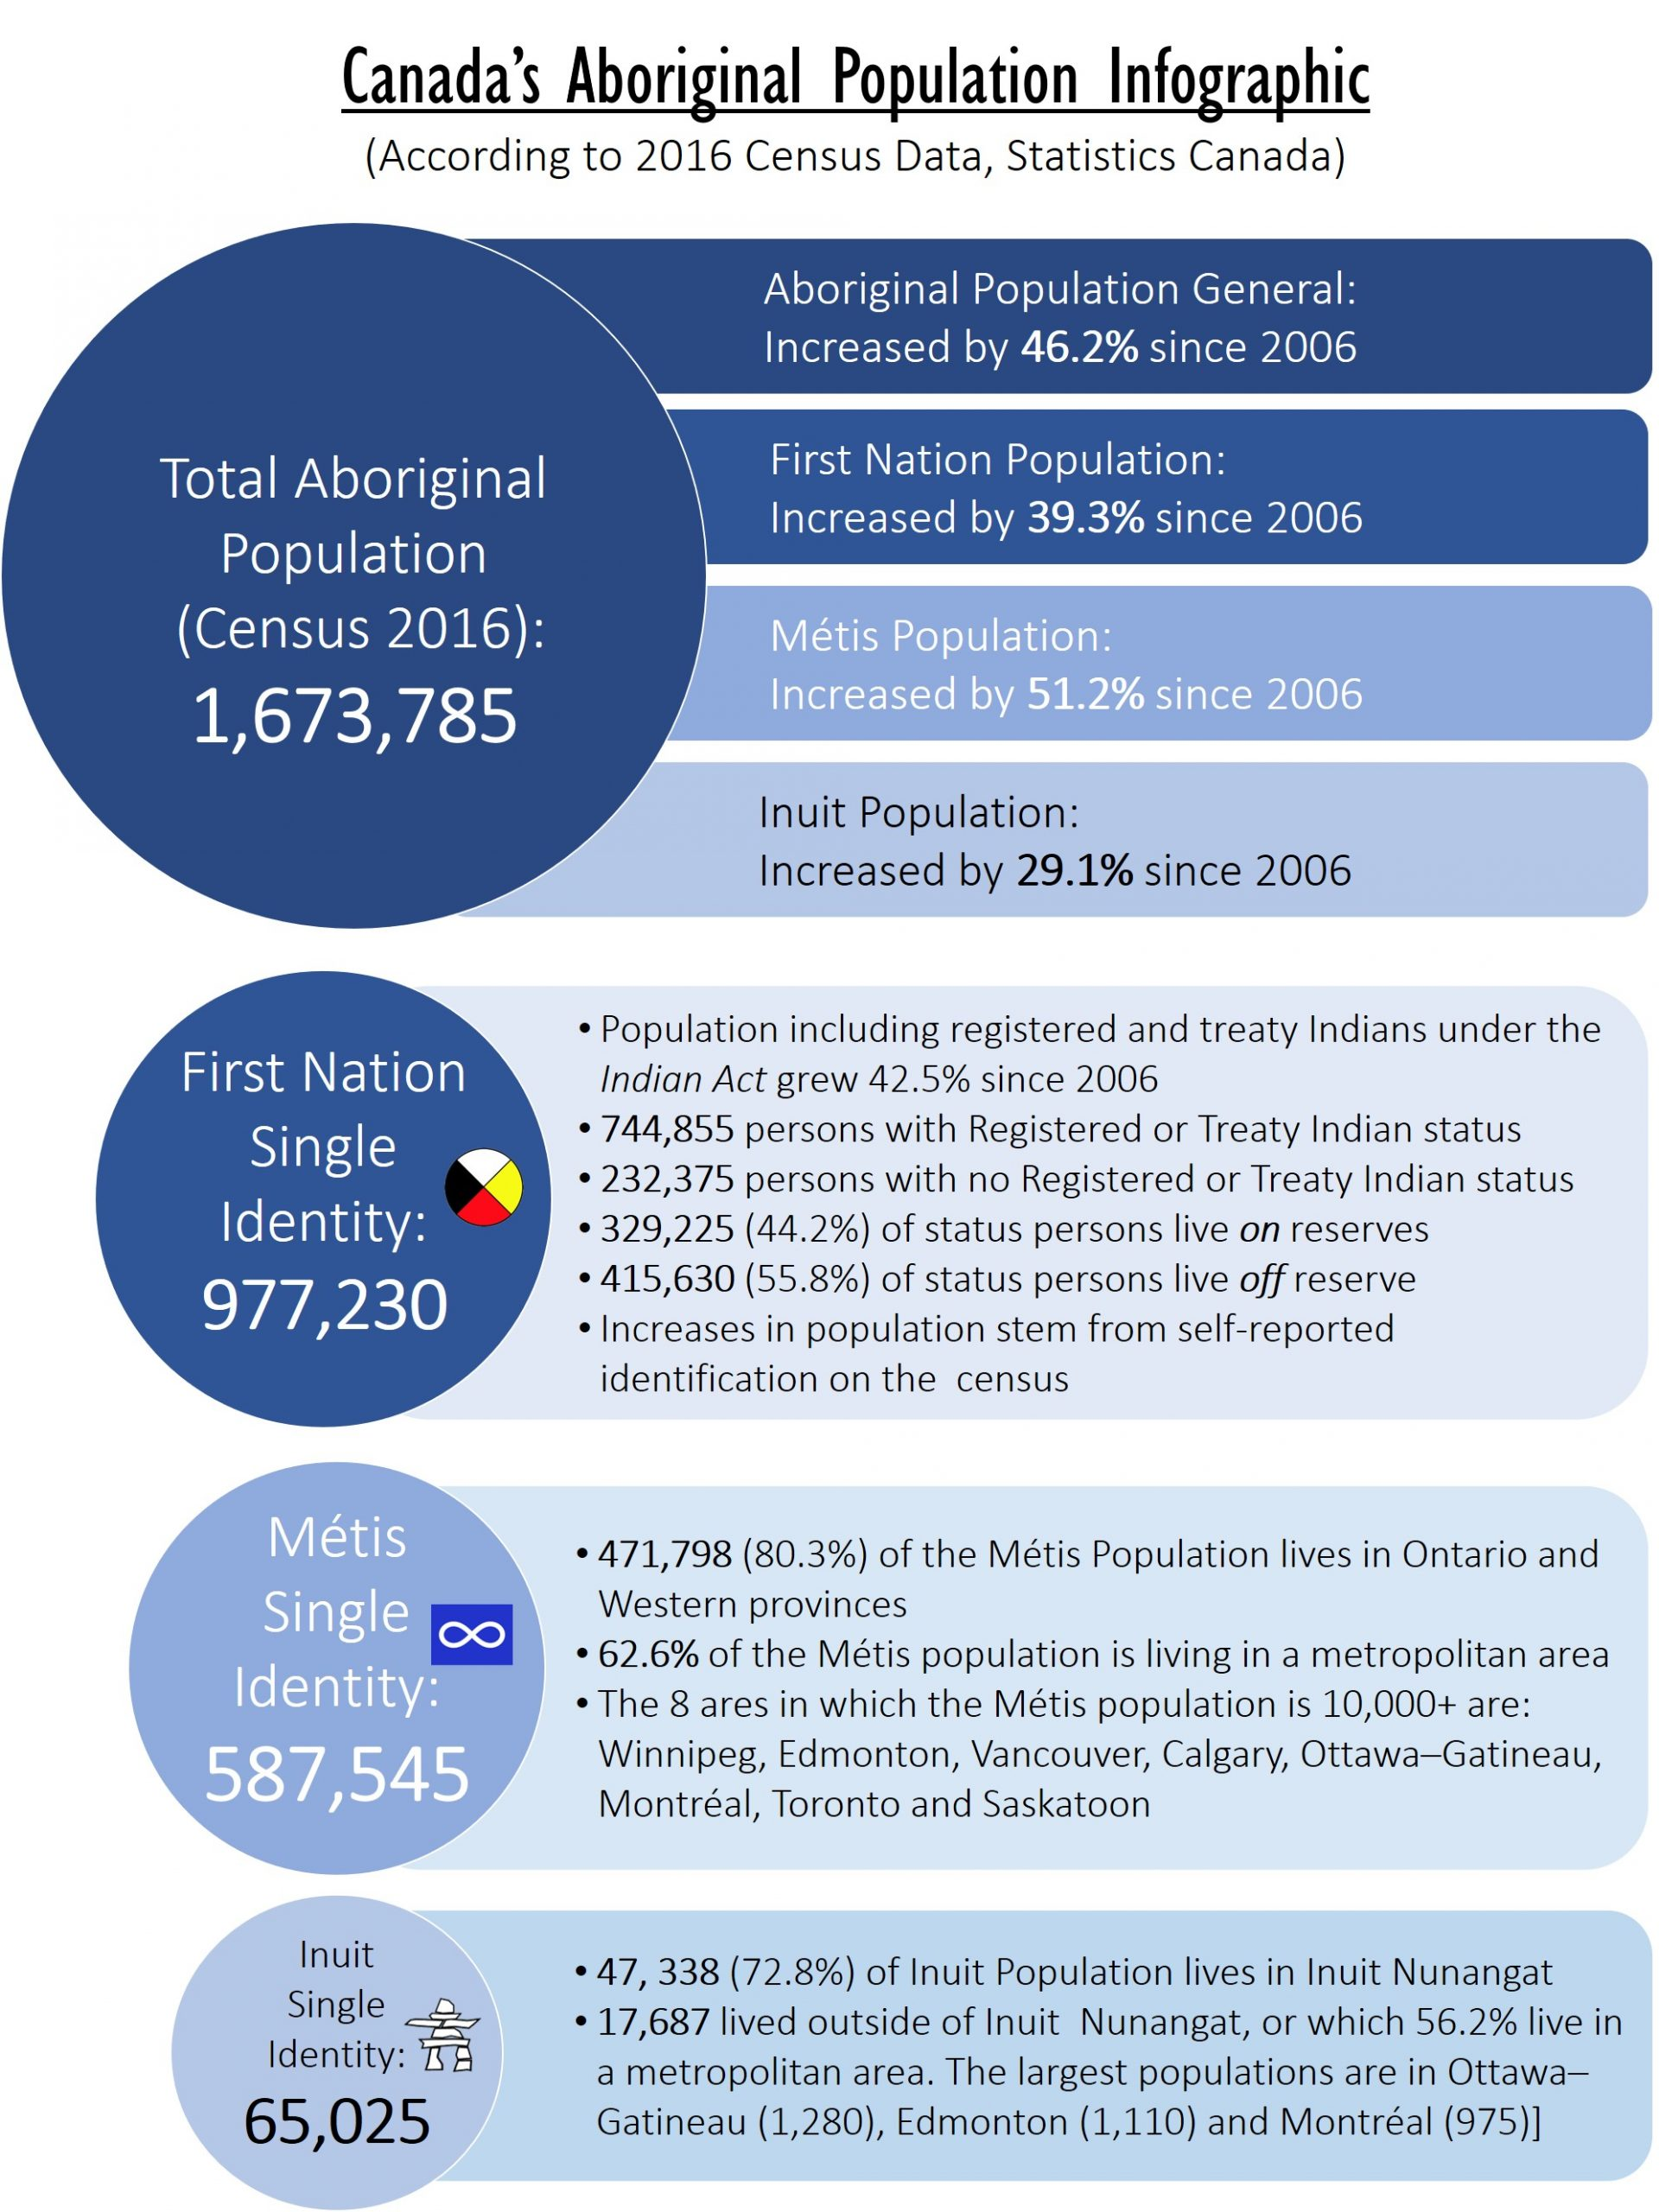 Canada's Aboriginal Population Infographic. Consolidated graphic by: Pauline Galoustian. Data Source: Statistics Canada (2016). Aboriginal Peoples in Canada -Key results from the 2016 Census (Access 90 Open) [17]